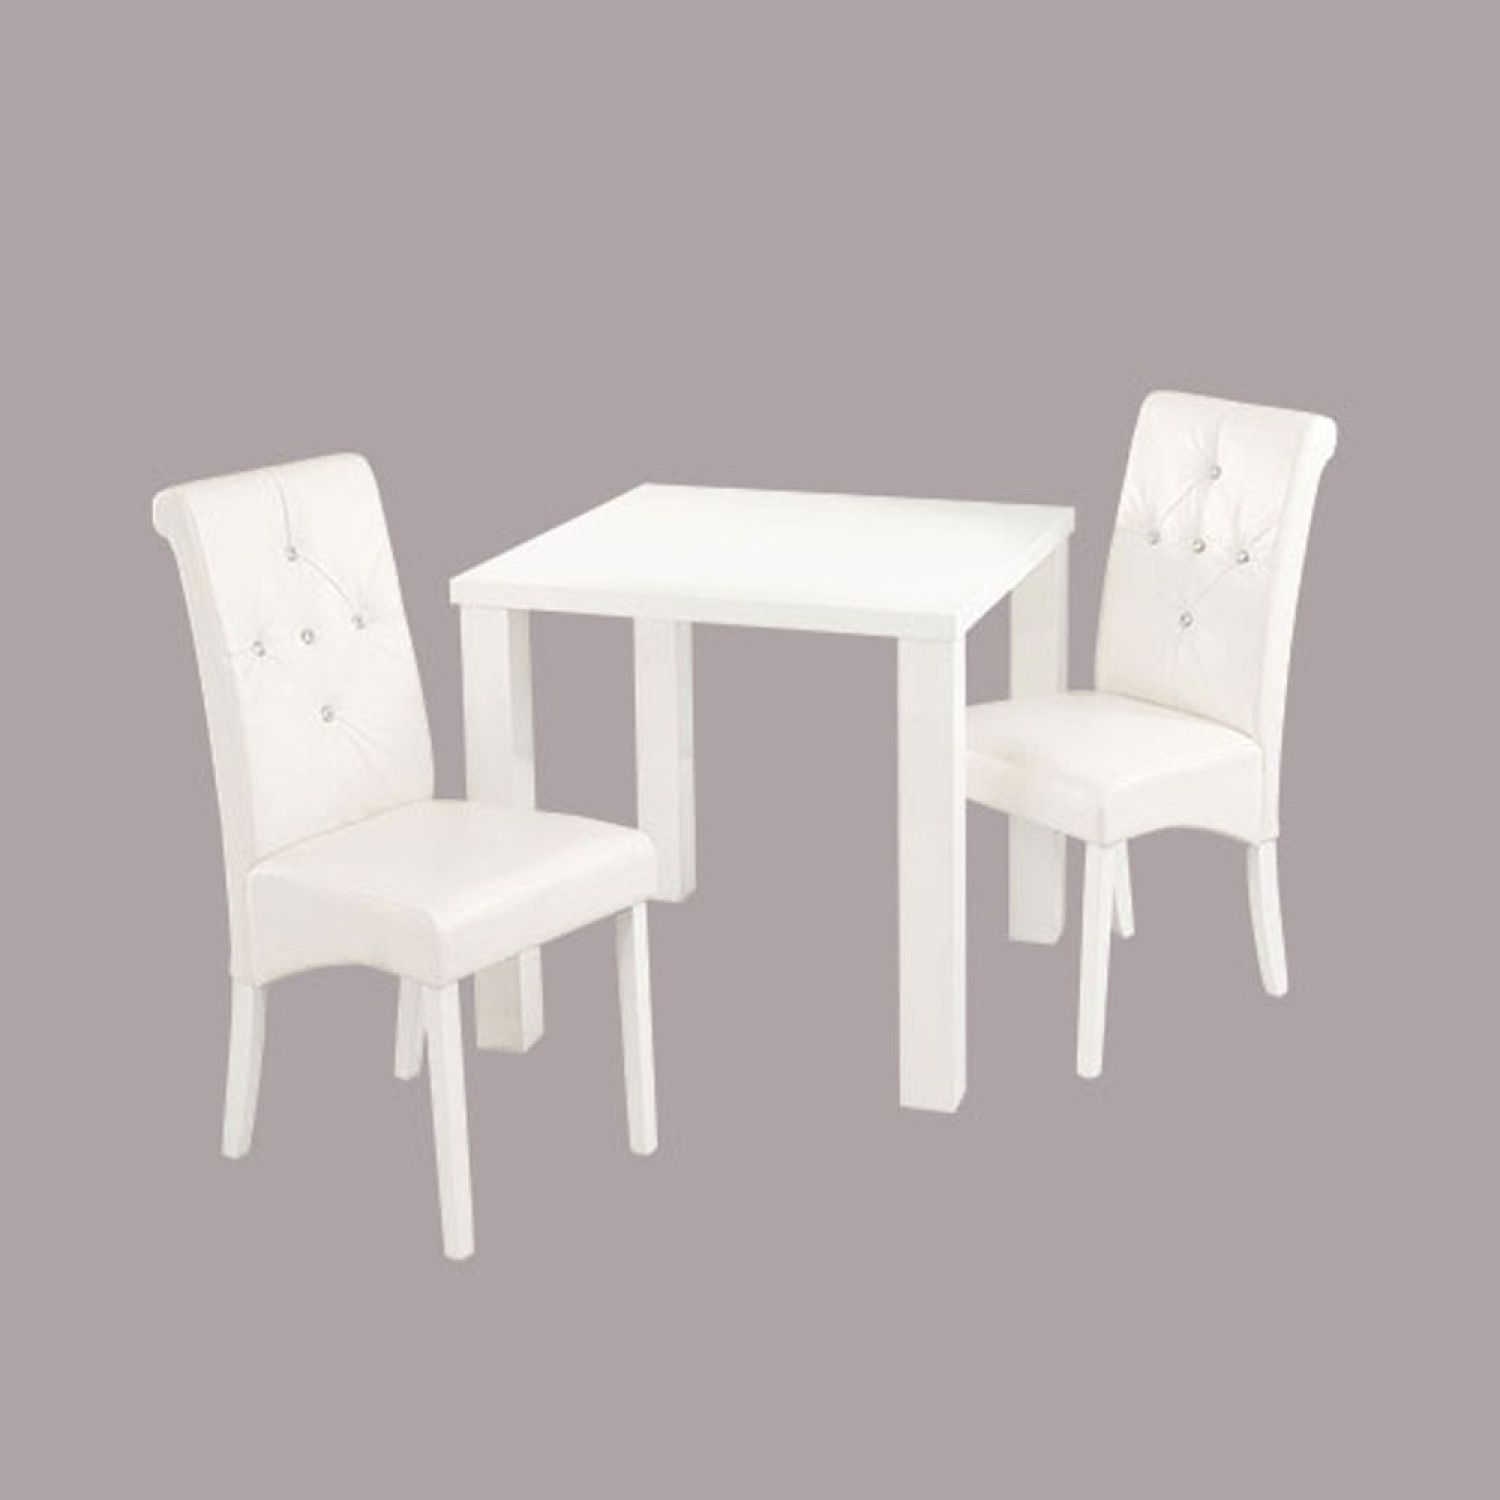 White Chairs For Dining Table Esszimmerstühle, Stühle